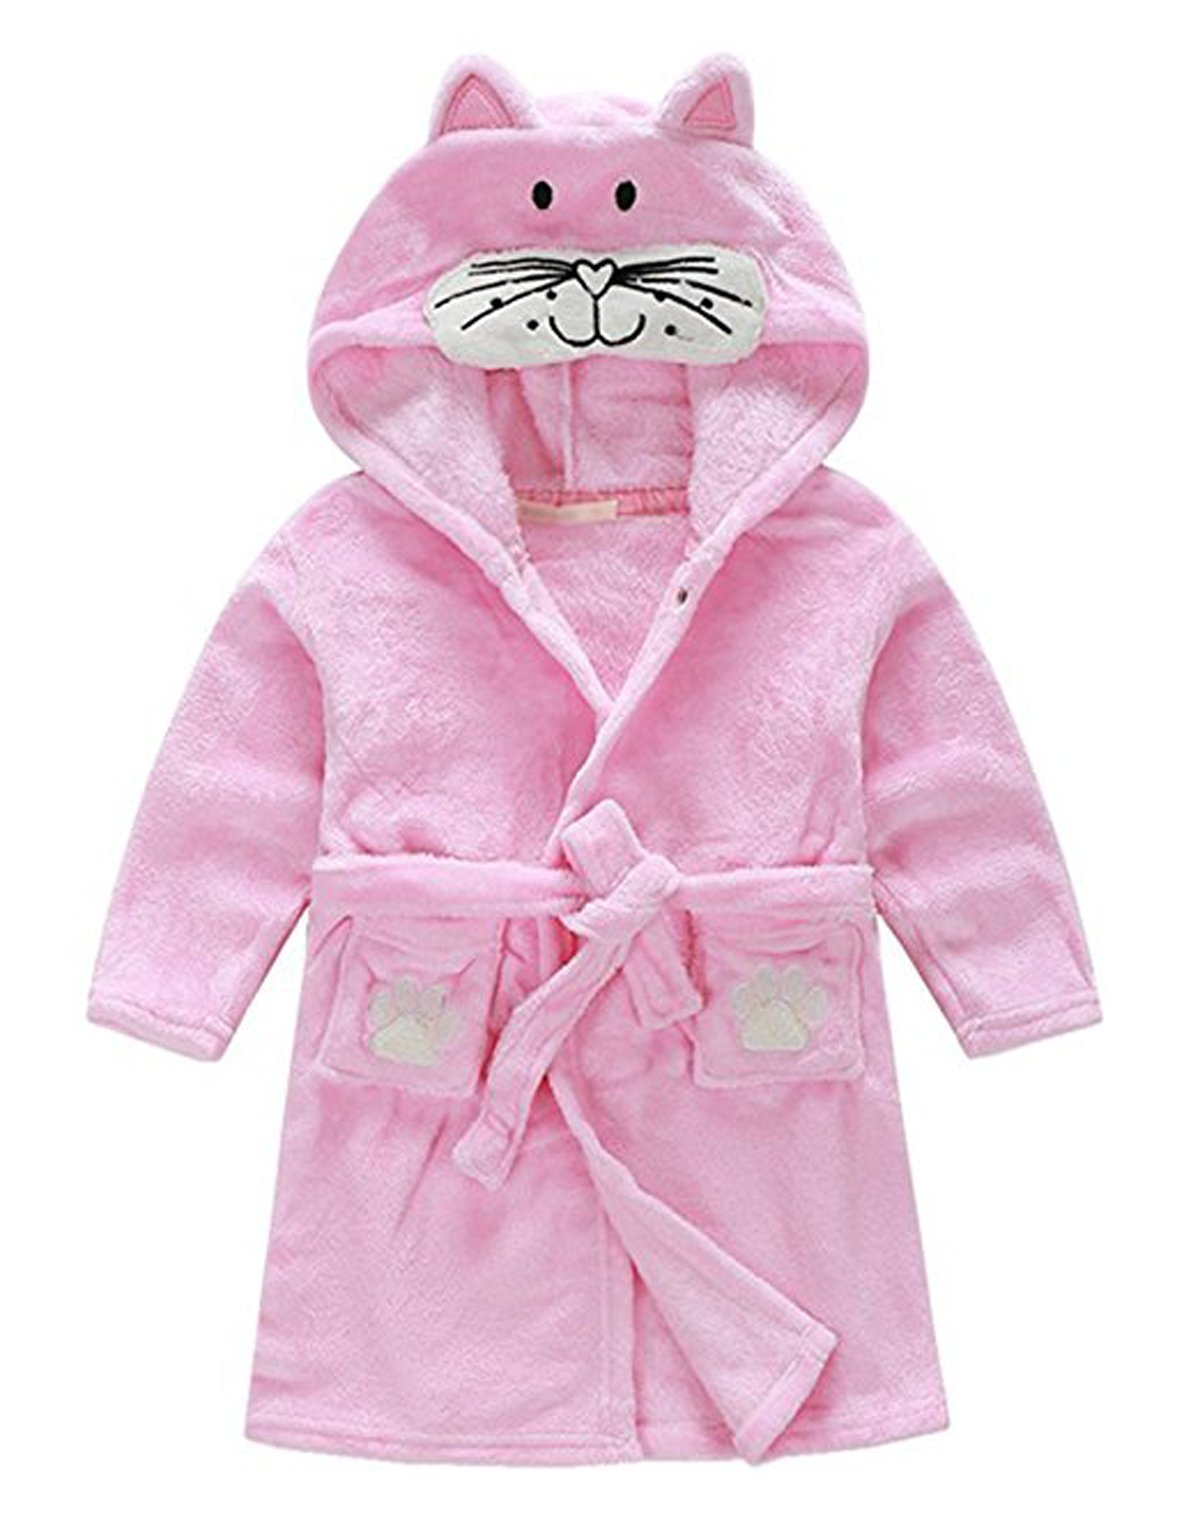 Kids Girls Fleece Robe Cotton Animal Dinosaur Hooded Bathrobe FBA(Pink Cat, 3T(Fit Height 35''-39''))